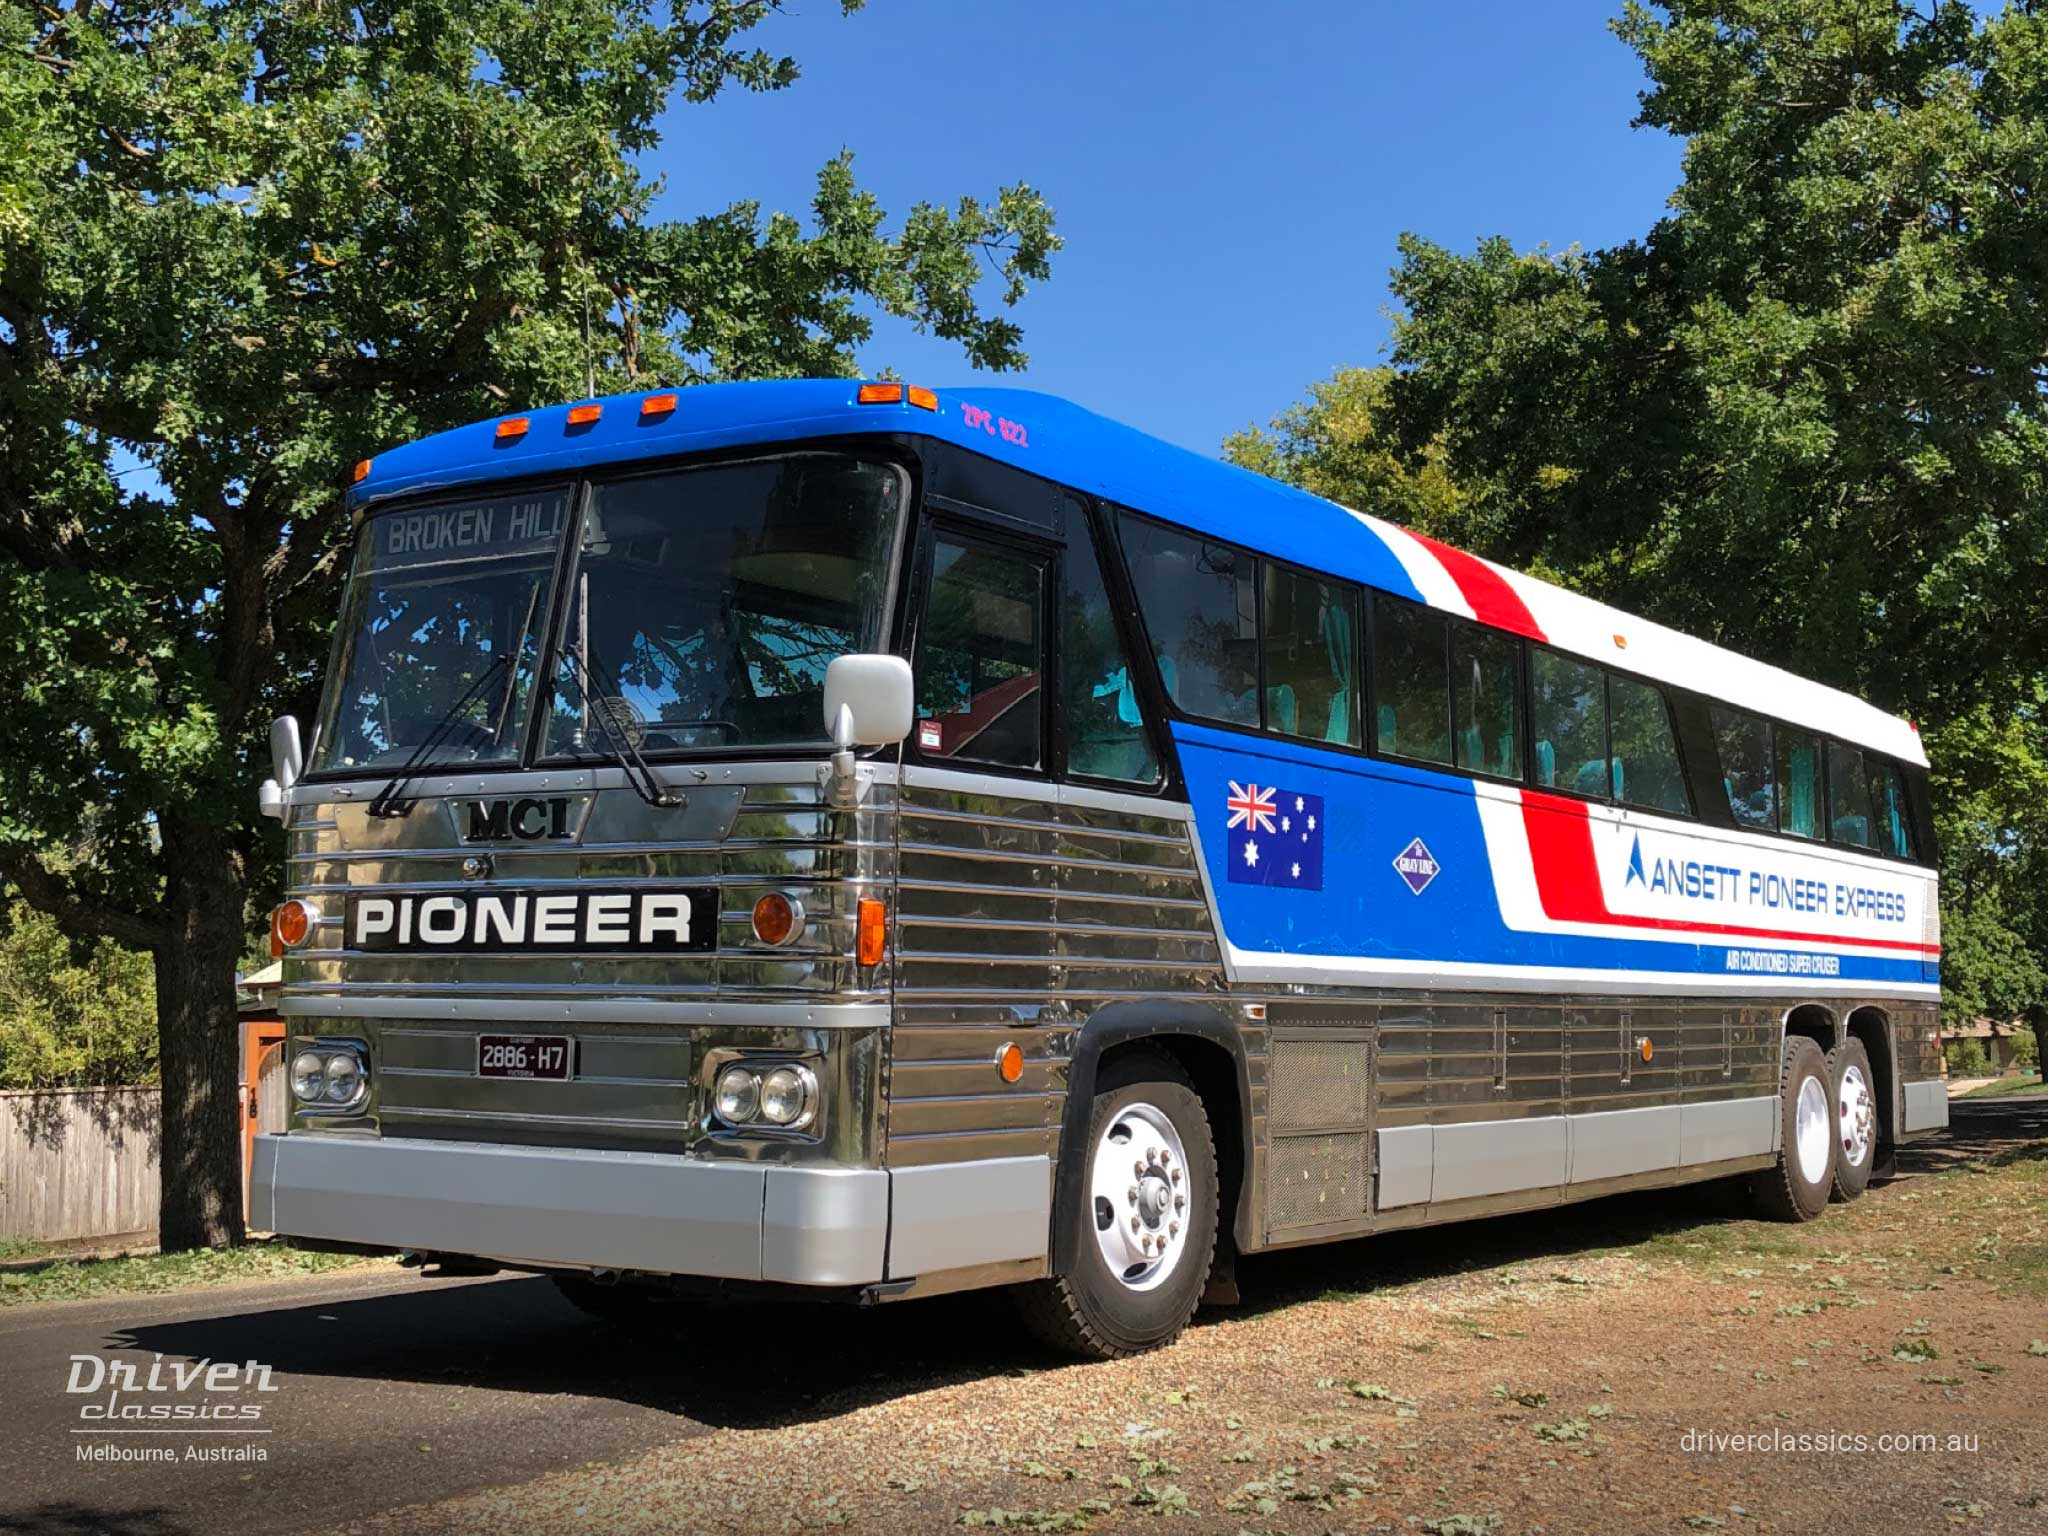 MCI MC8 bus (1976 version), door side and front, Lysterfield VIC. Photo taken Jul 2020